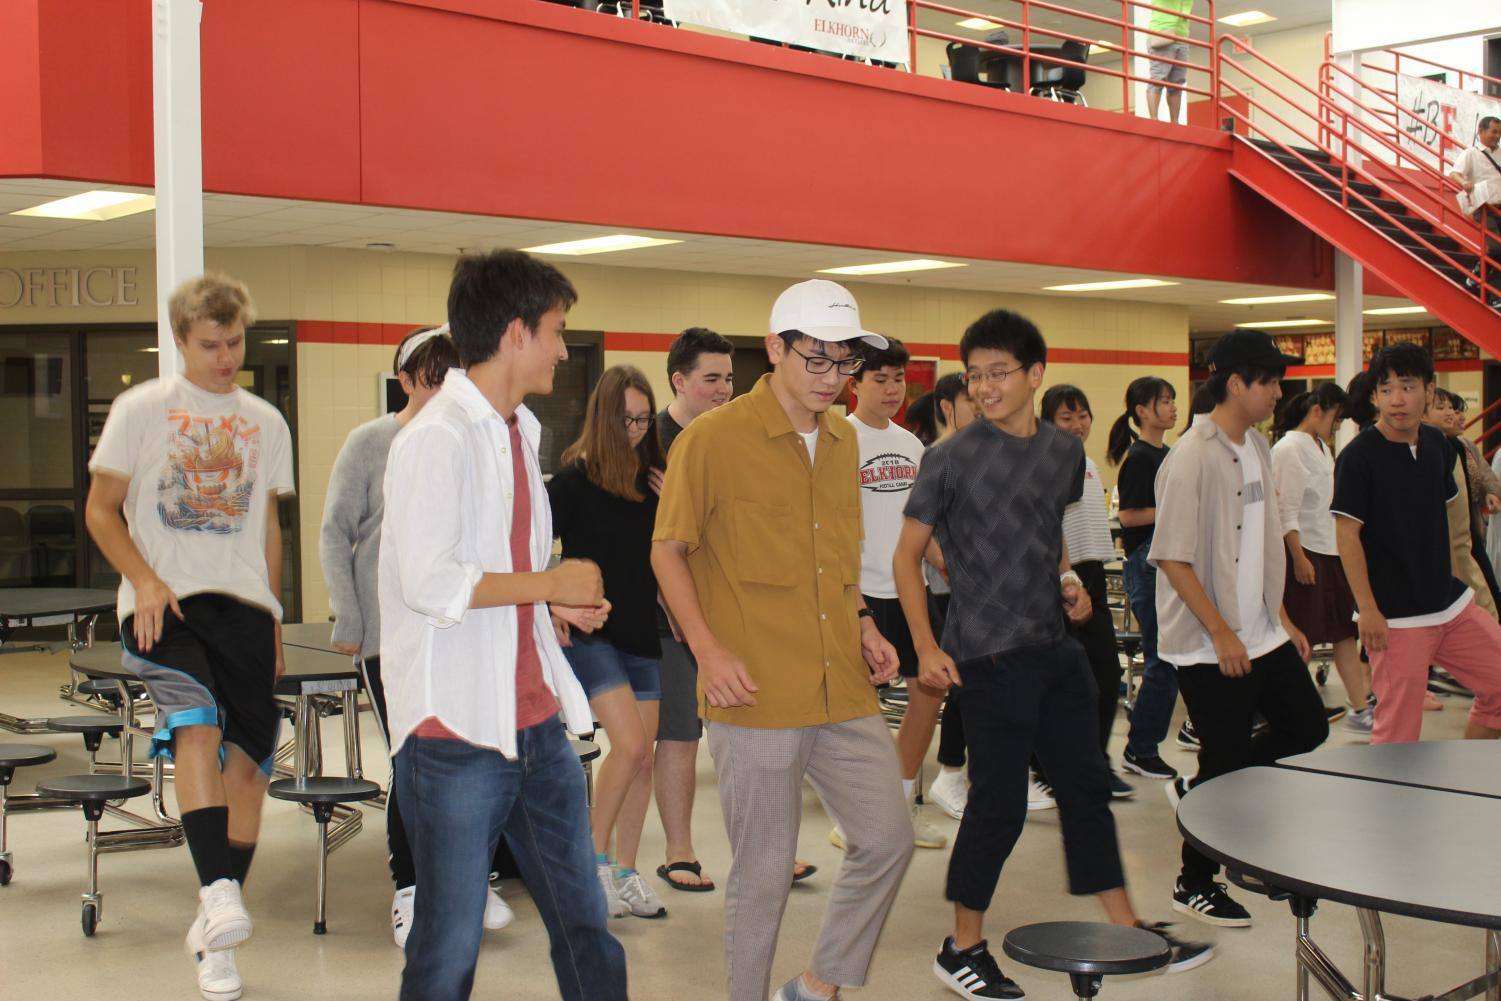 Japanese+students+learn+the+Cupid+Shuffle.+This+song+is+one+of+many+songs+in+which+Japanese+students+learned+a+popular+dance.+